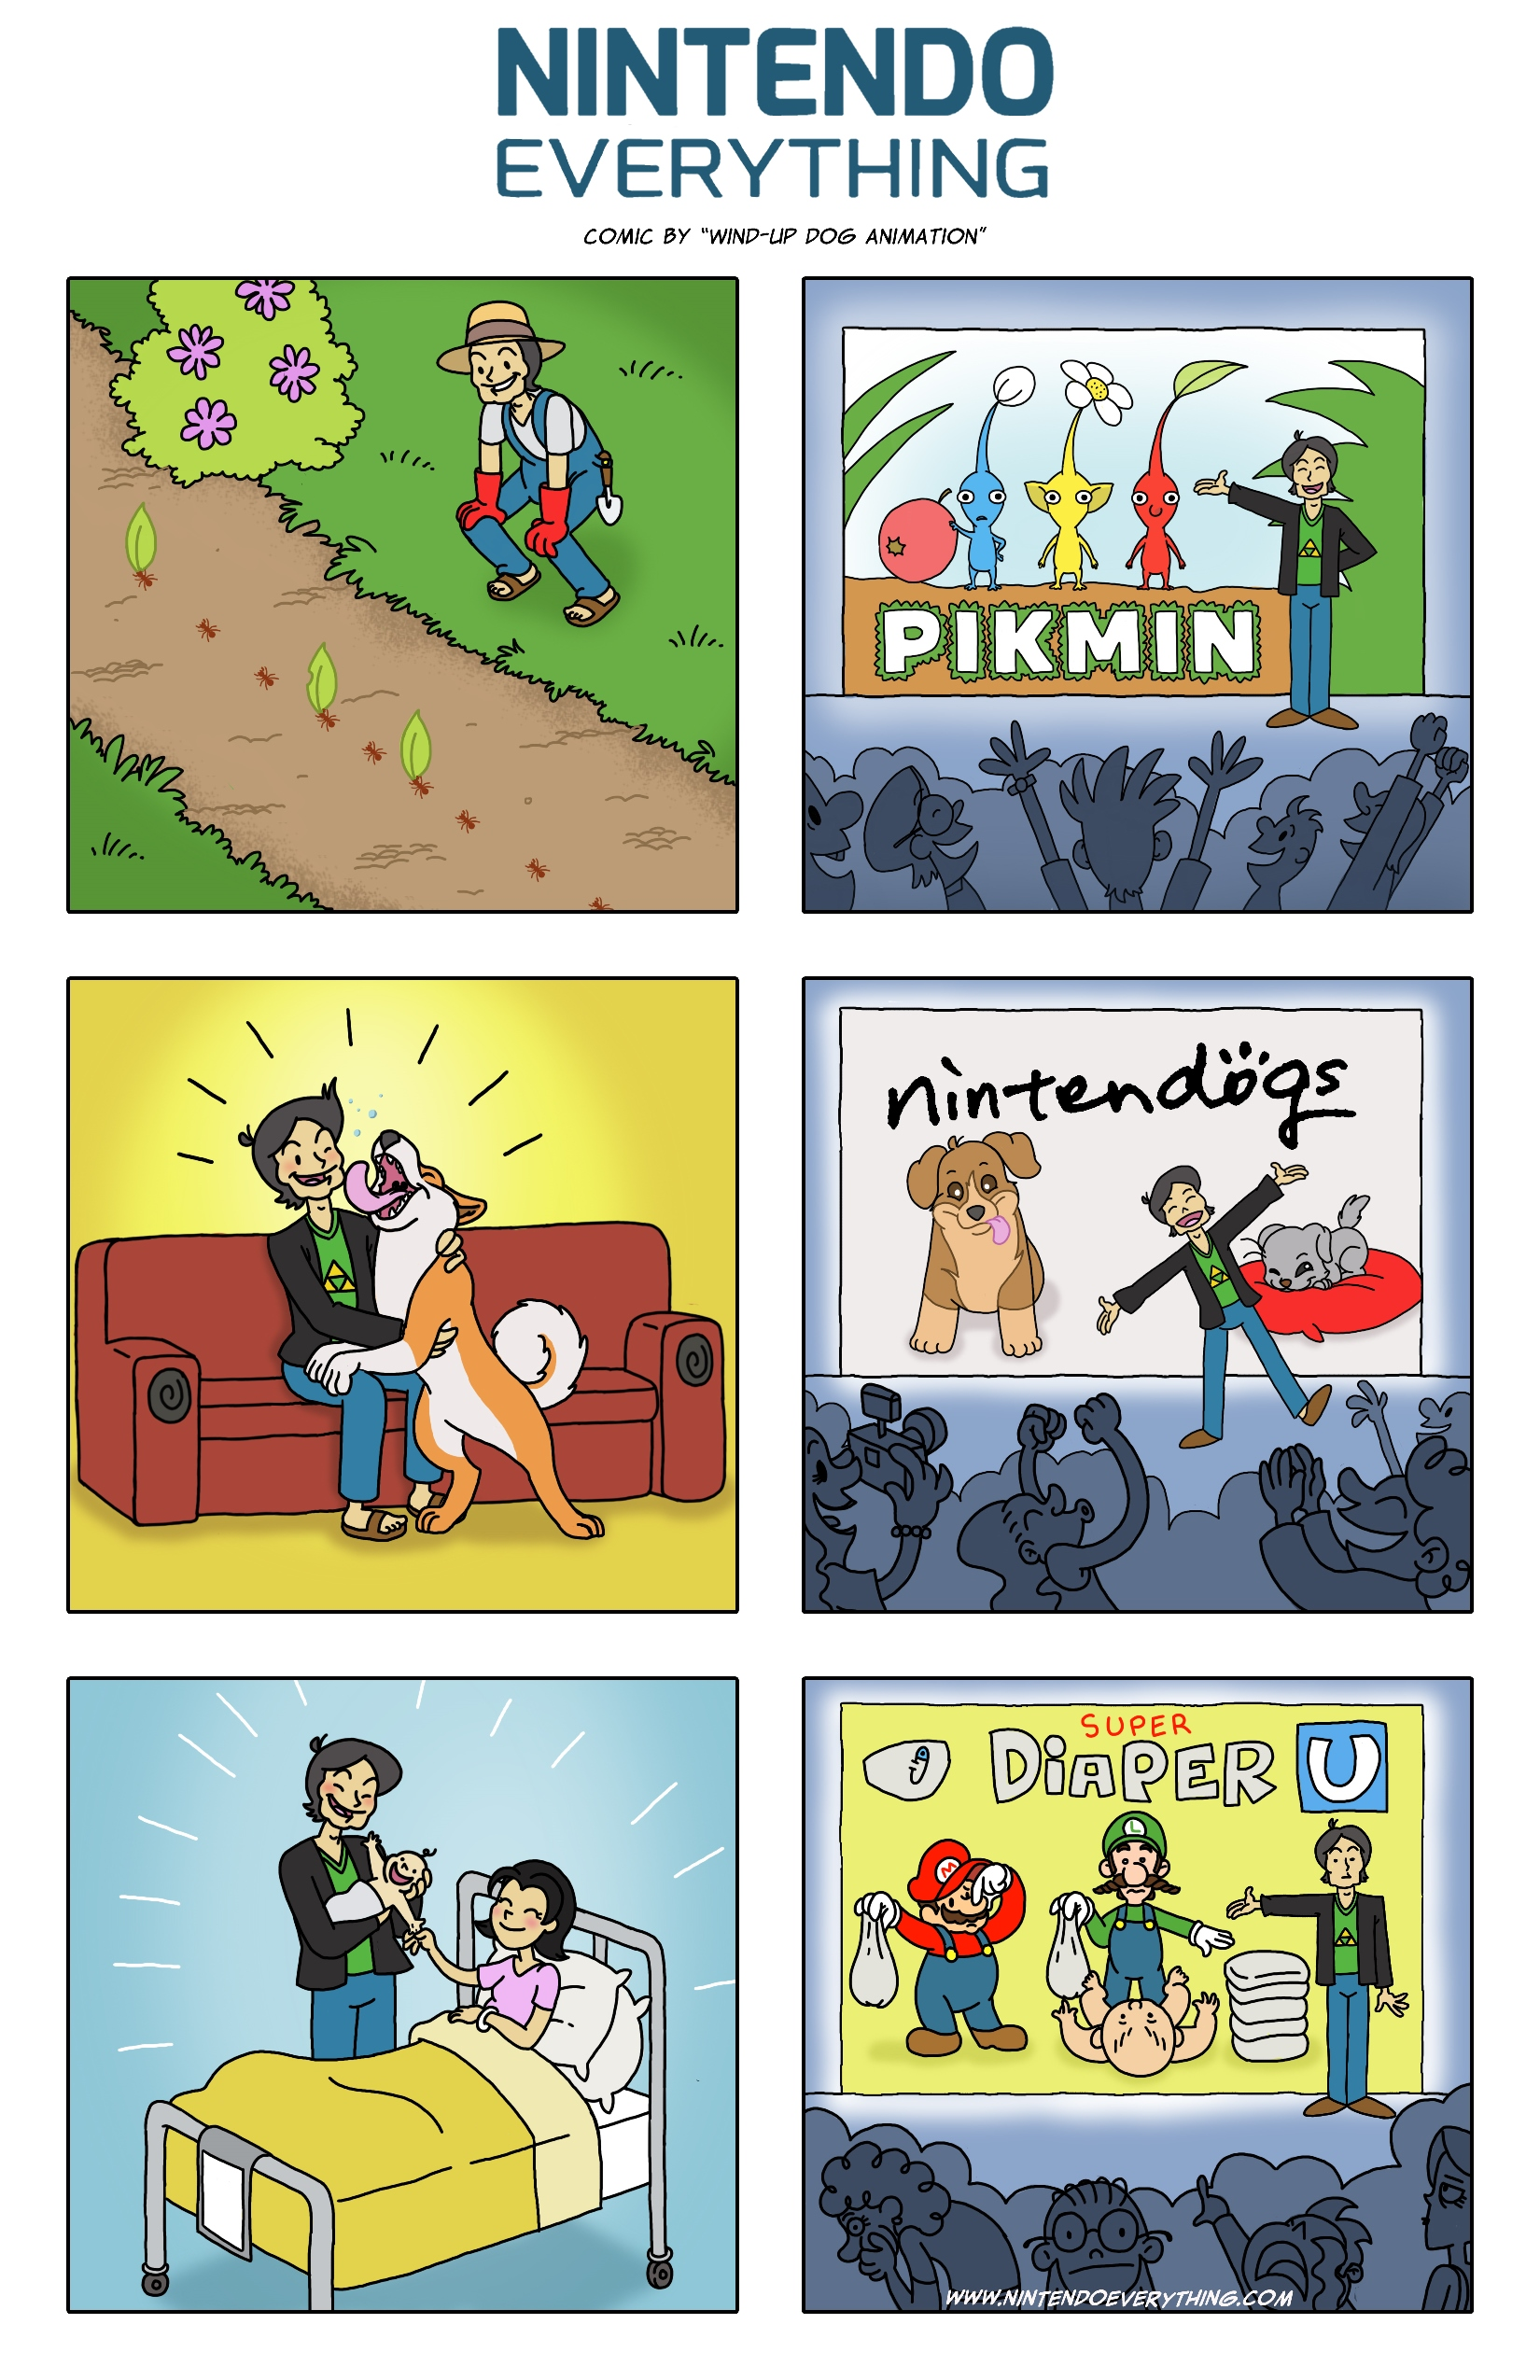 nintendo-everything-comic-9-miyamoto-inspirations